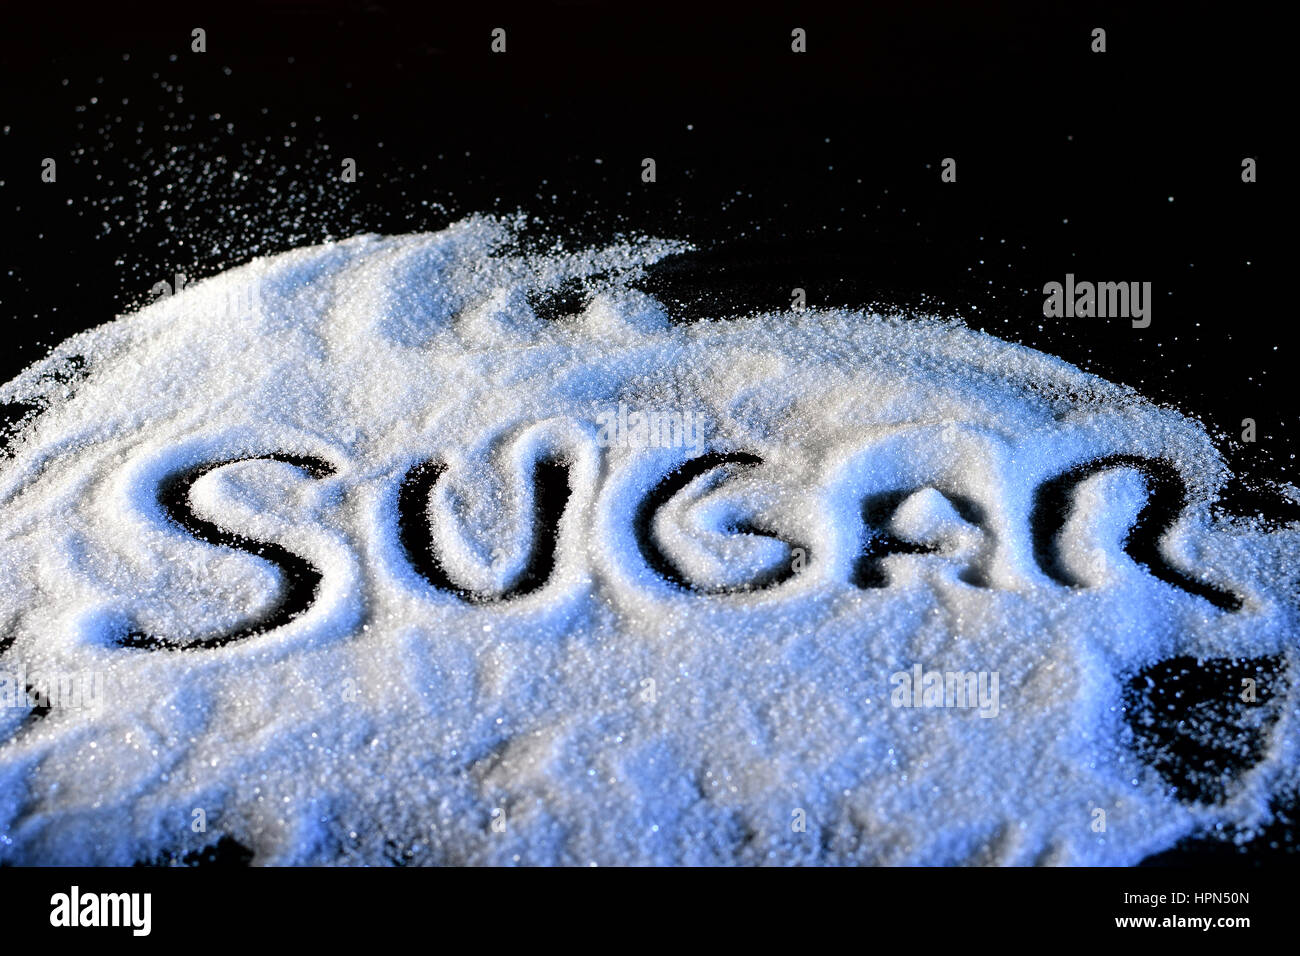 Word sugar written with finger to pile of white sugar. - Stock Image